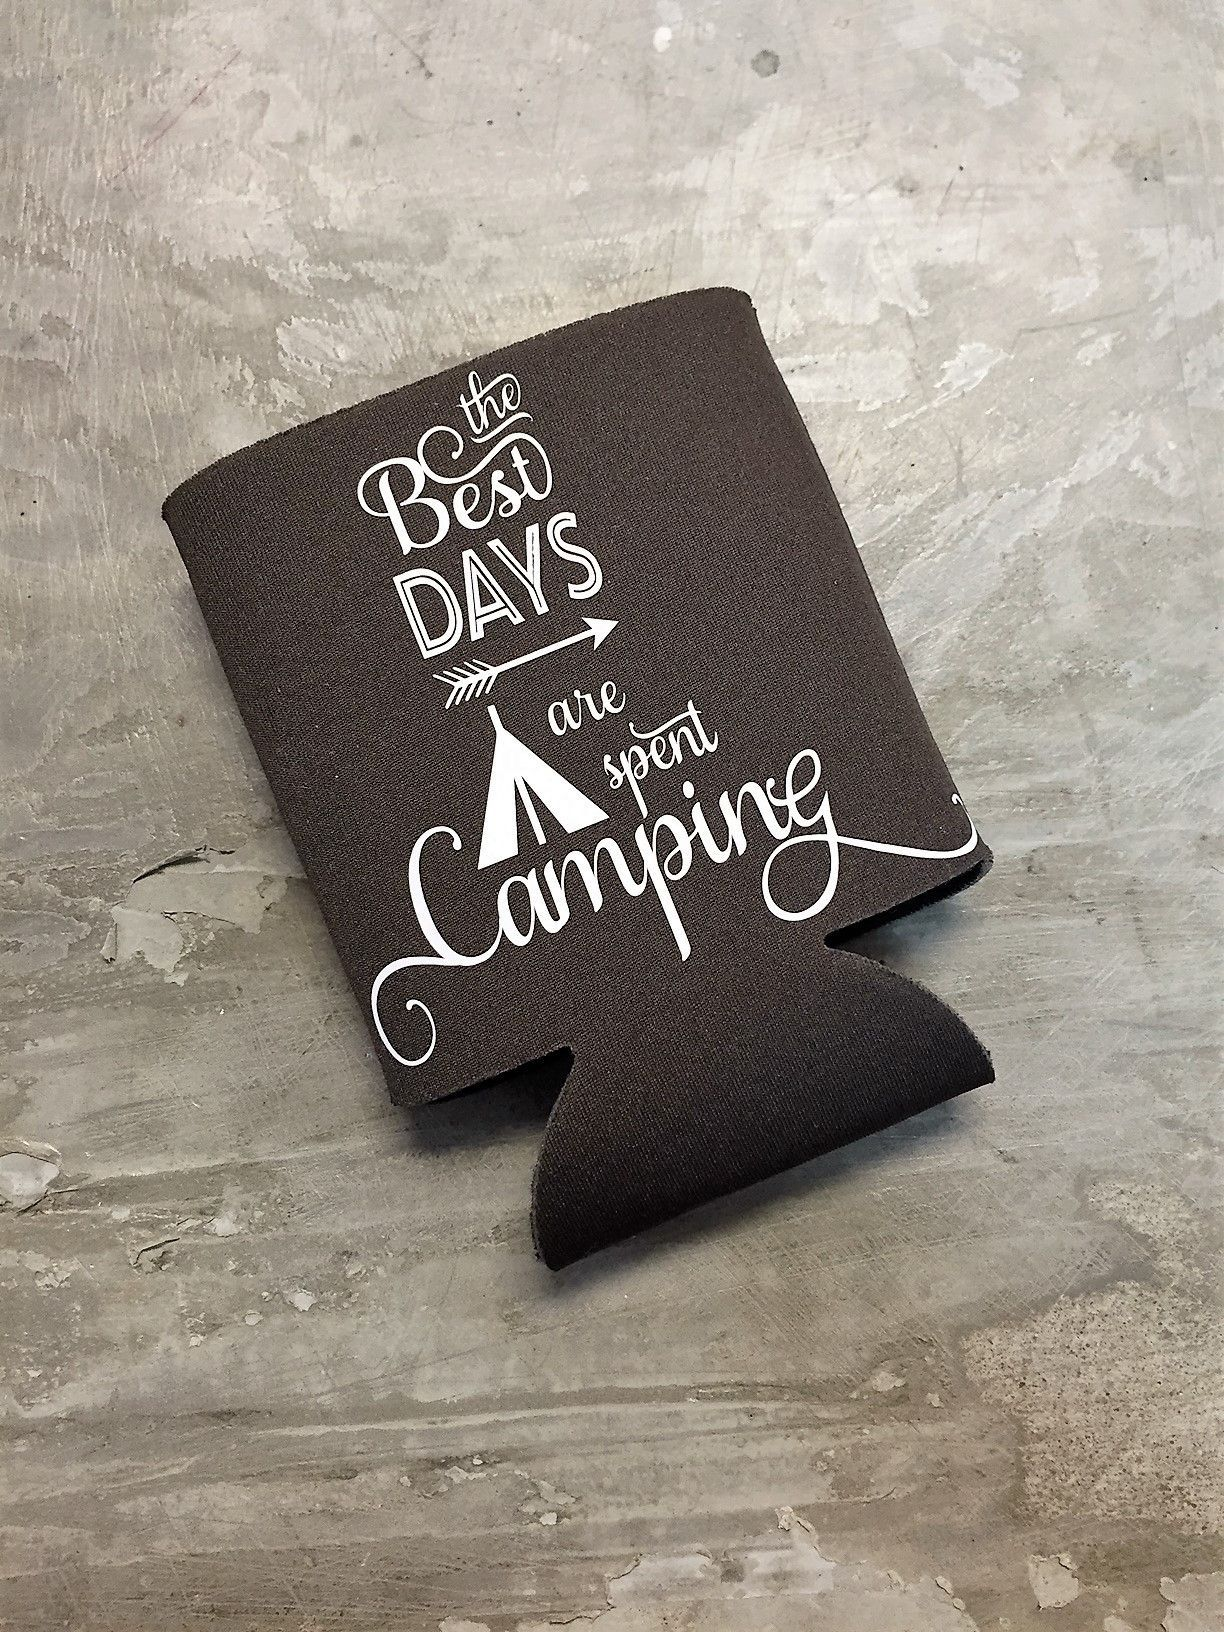 The best days are spent camping koozie | koozies/camping ...